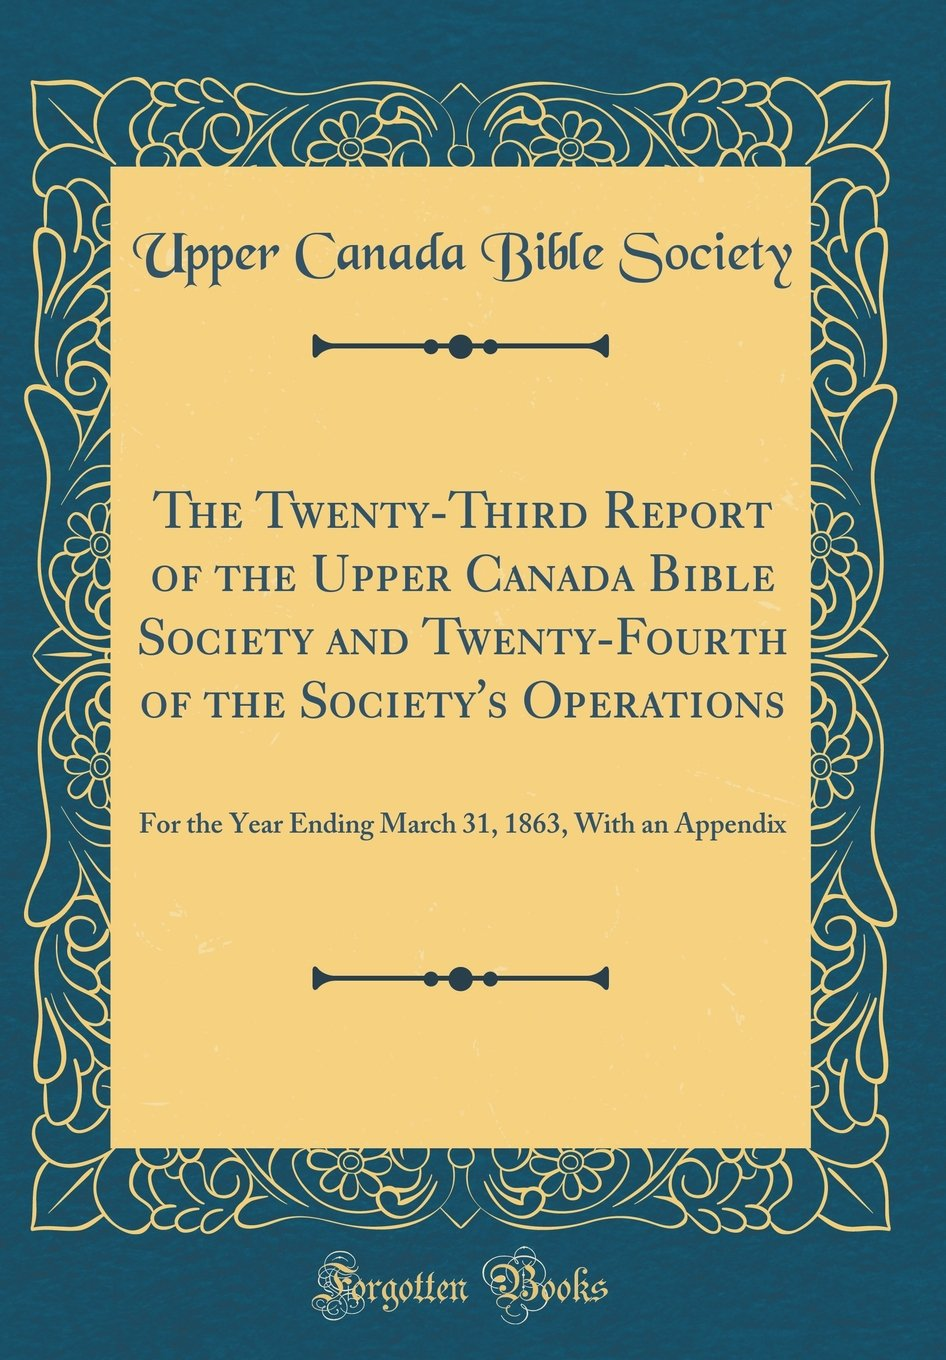 The Twenty-Third Report of the Upper Canada Bible Society and Twenty-Fourth of the Society's Operations: For the Year Ending March 31, 1863, With an Appendix (Classic Reprint) pdf